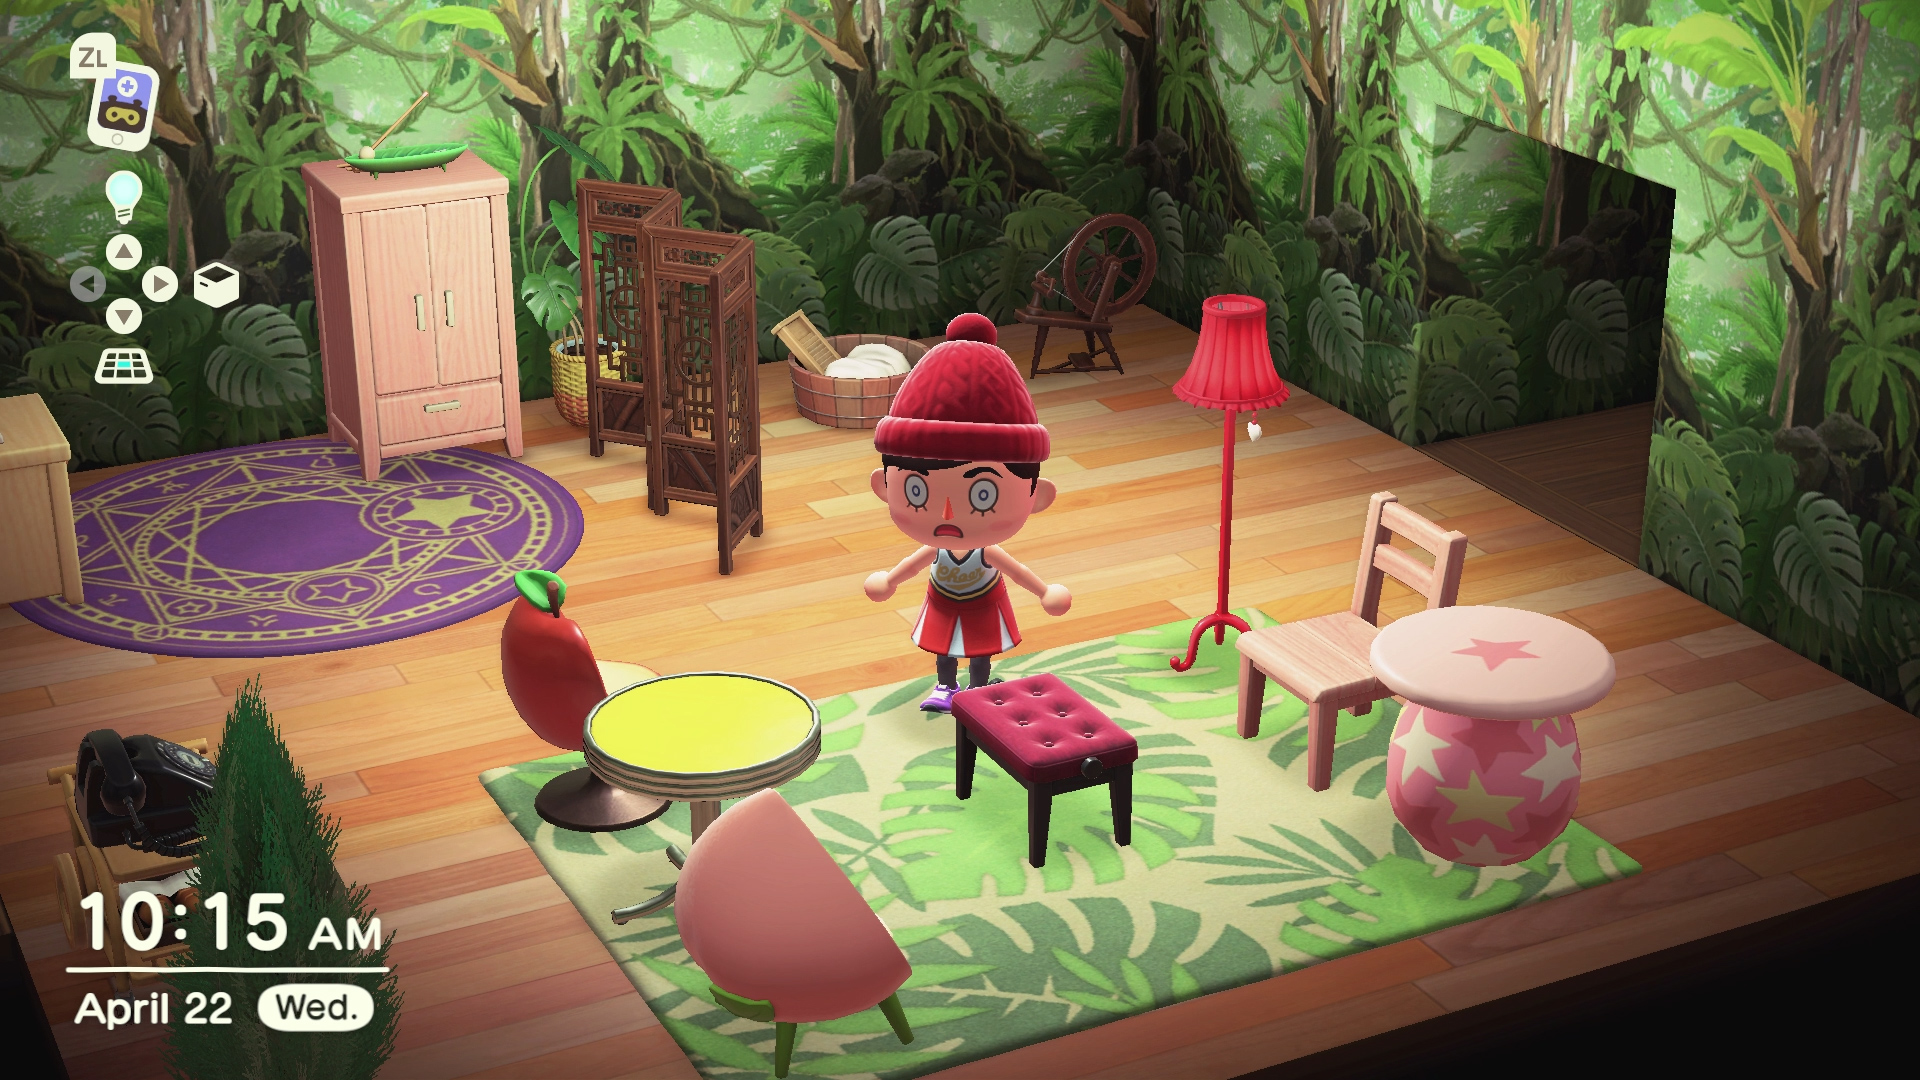 My Animal Crossing avatar, dressing a red knit cap and a red cheerleader outfit, gawking at some horrible furniture arrangement.